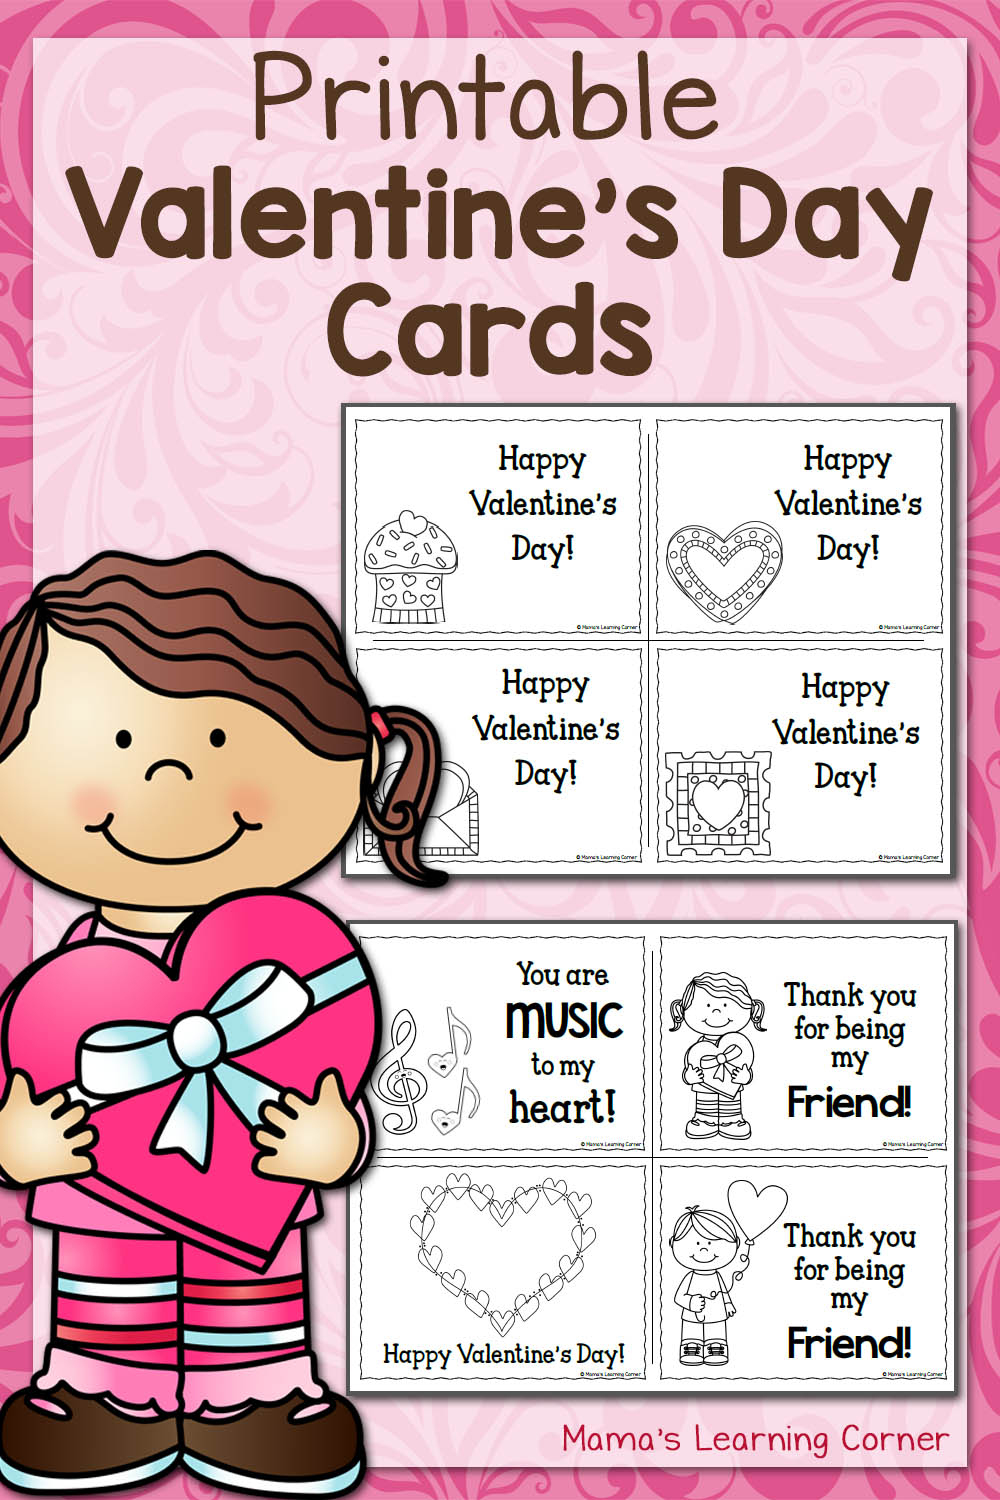 Printable Valentine's Day Cards - Mamas Learning Corner - Free Printable Valentines Day Cards